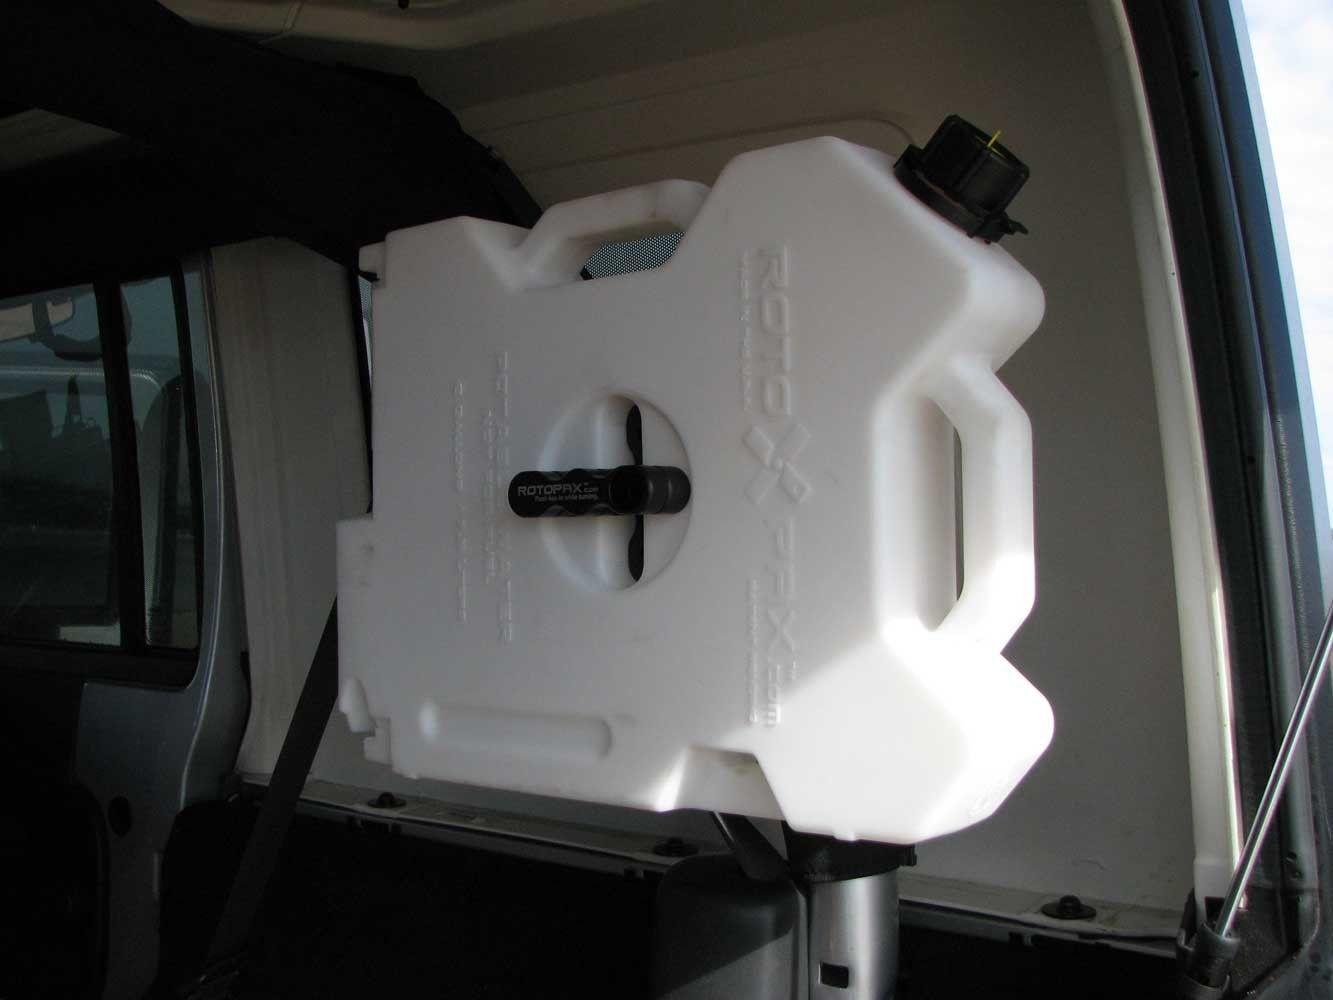 Rotopax Can Mount Interior Roll Bar Mount 2 Gallon Water